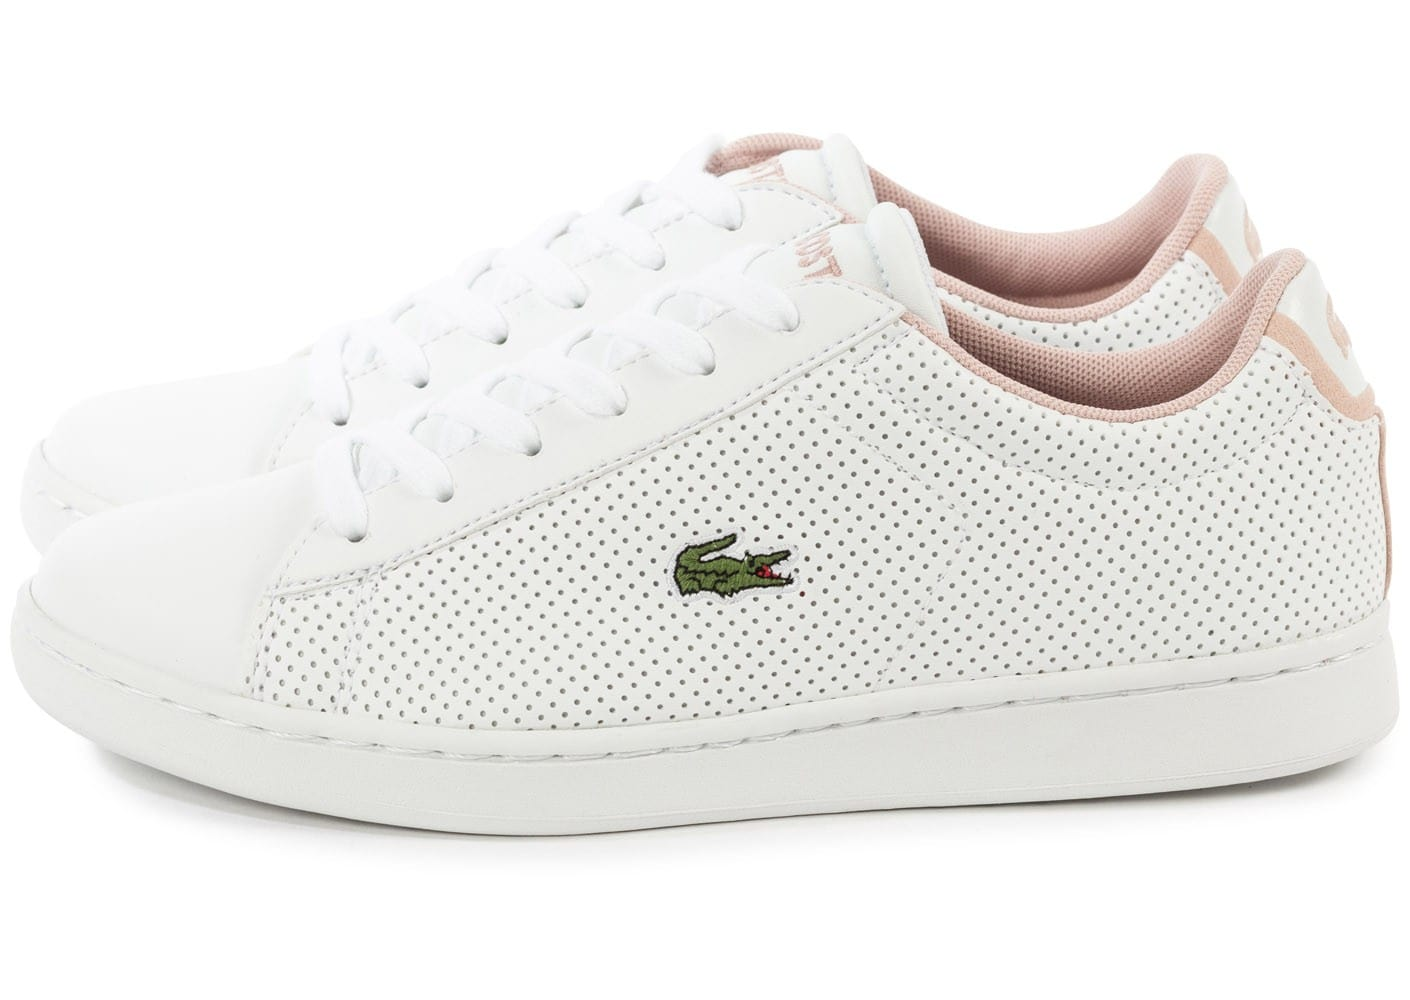 27fbb95d62 Blanche Chaussure Chaussure Femme Lacoste Femme Blanche Lacoste ntYxqqfdw